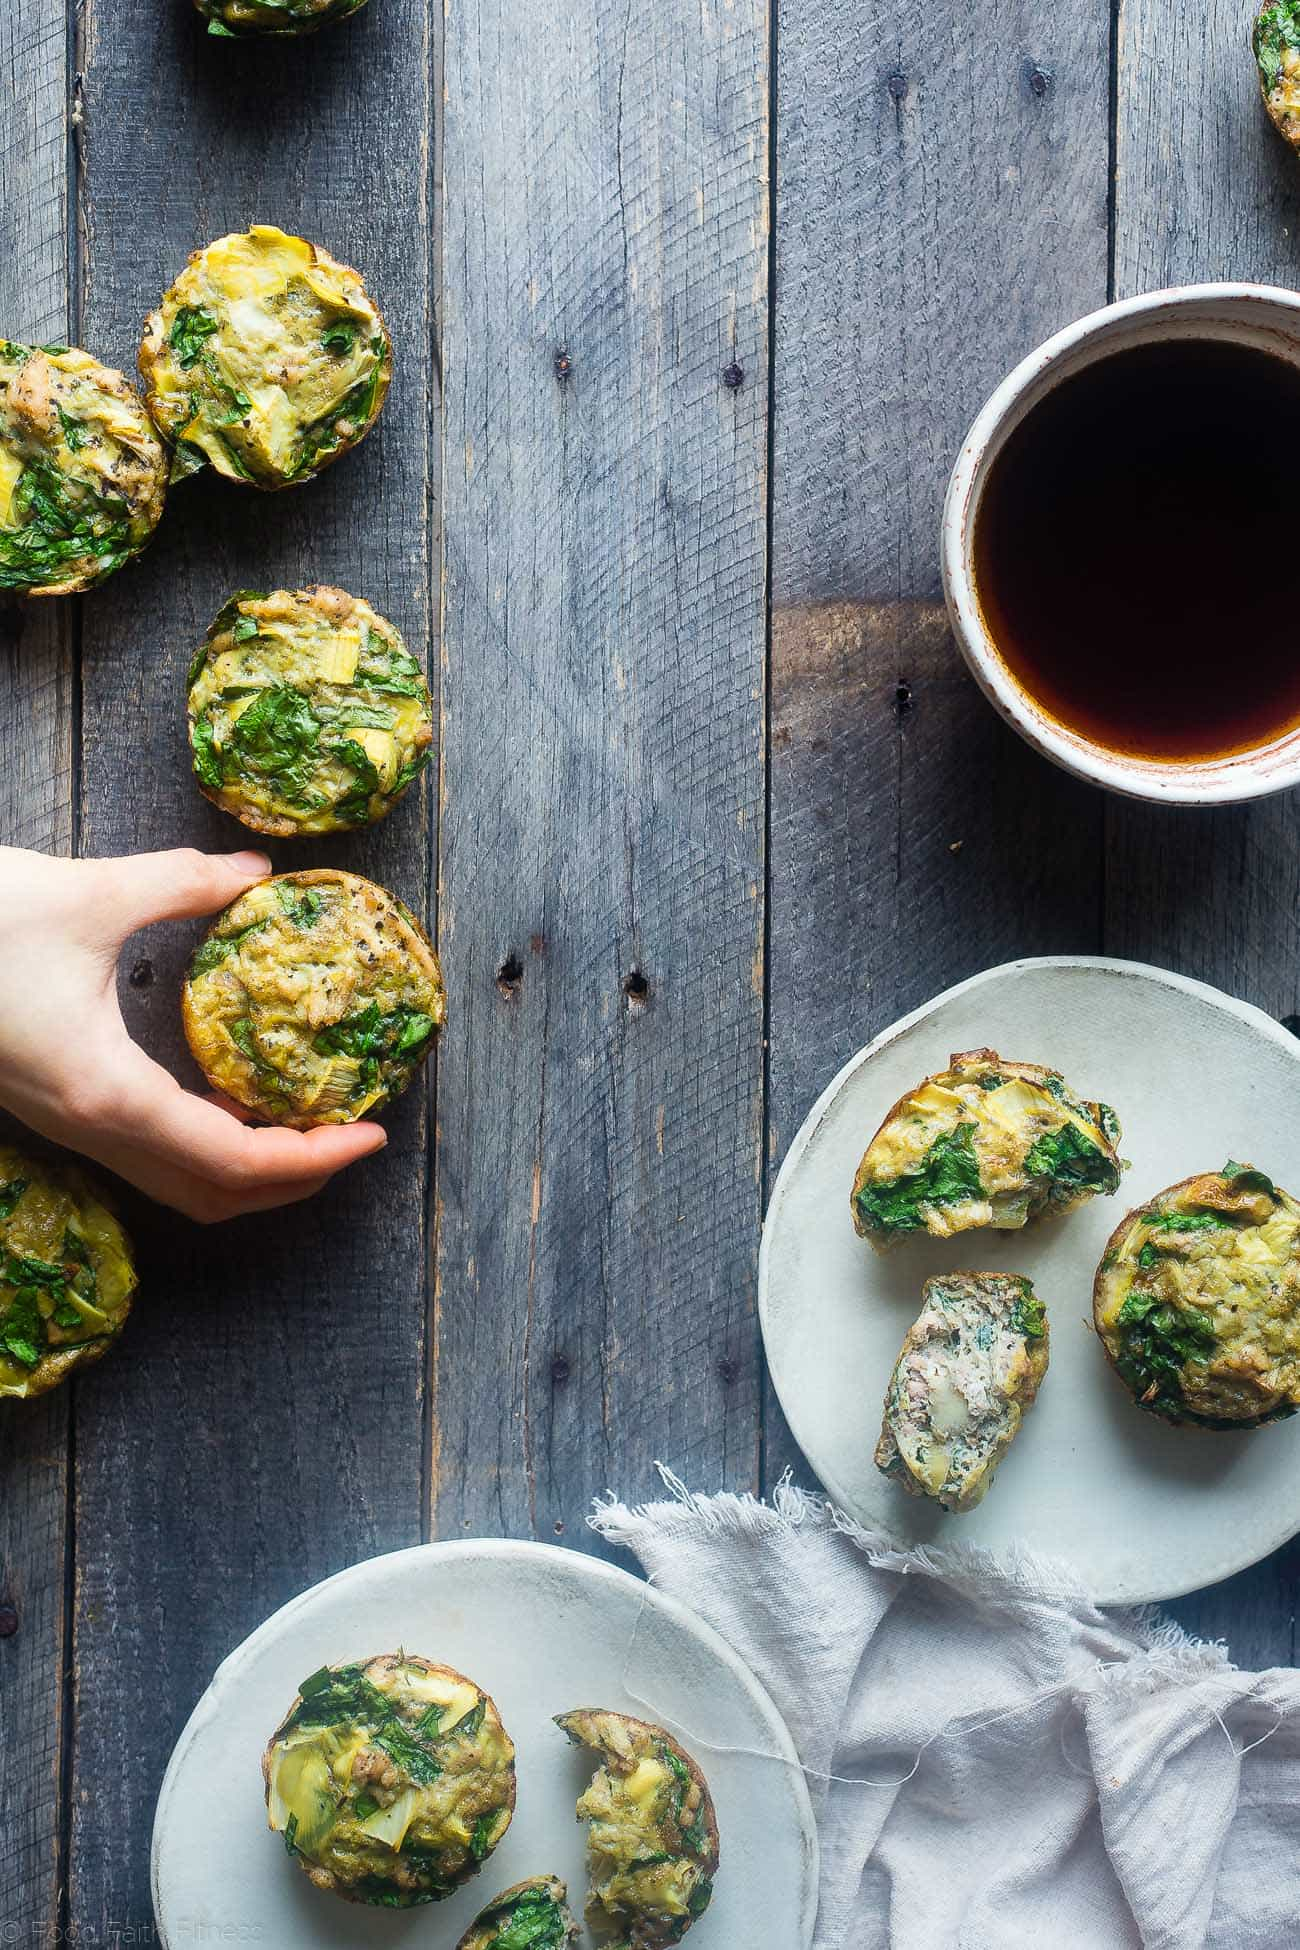 Whole30 Spinach and Artichoke Egg Muffins - These easy, 6 ingredient paleo spinach breakfast egg muffins are low carb, gluten free, and under 100 calories! Perfect for busy mornings! | Foodfaithfitness.com | @FoodFaithFit